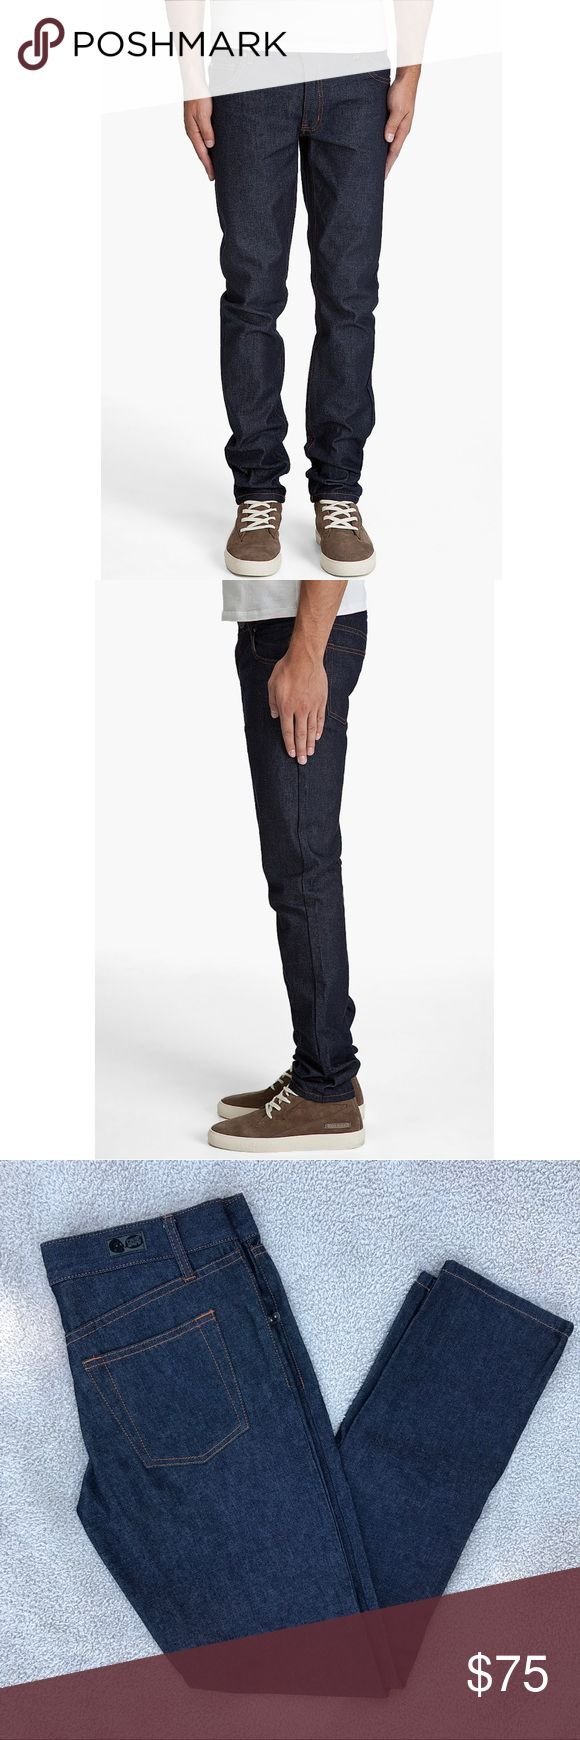 Cheap Monday Staff Boy Dry Jeans Slim fit tapered leg jeans in dark indigo dry denim. Distressed silver tone rivets. Contrast stitching in orange. Zip fly. 100% cotton. Color: blue. New without tags Cheap Monday Jeans Slim